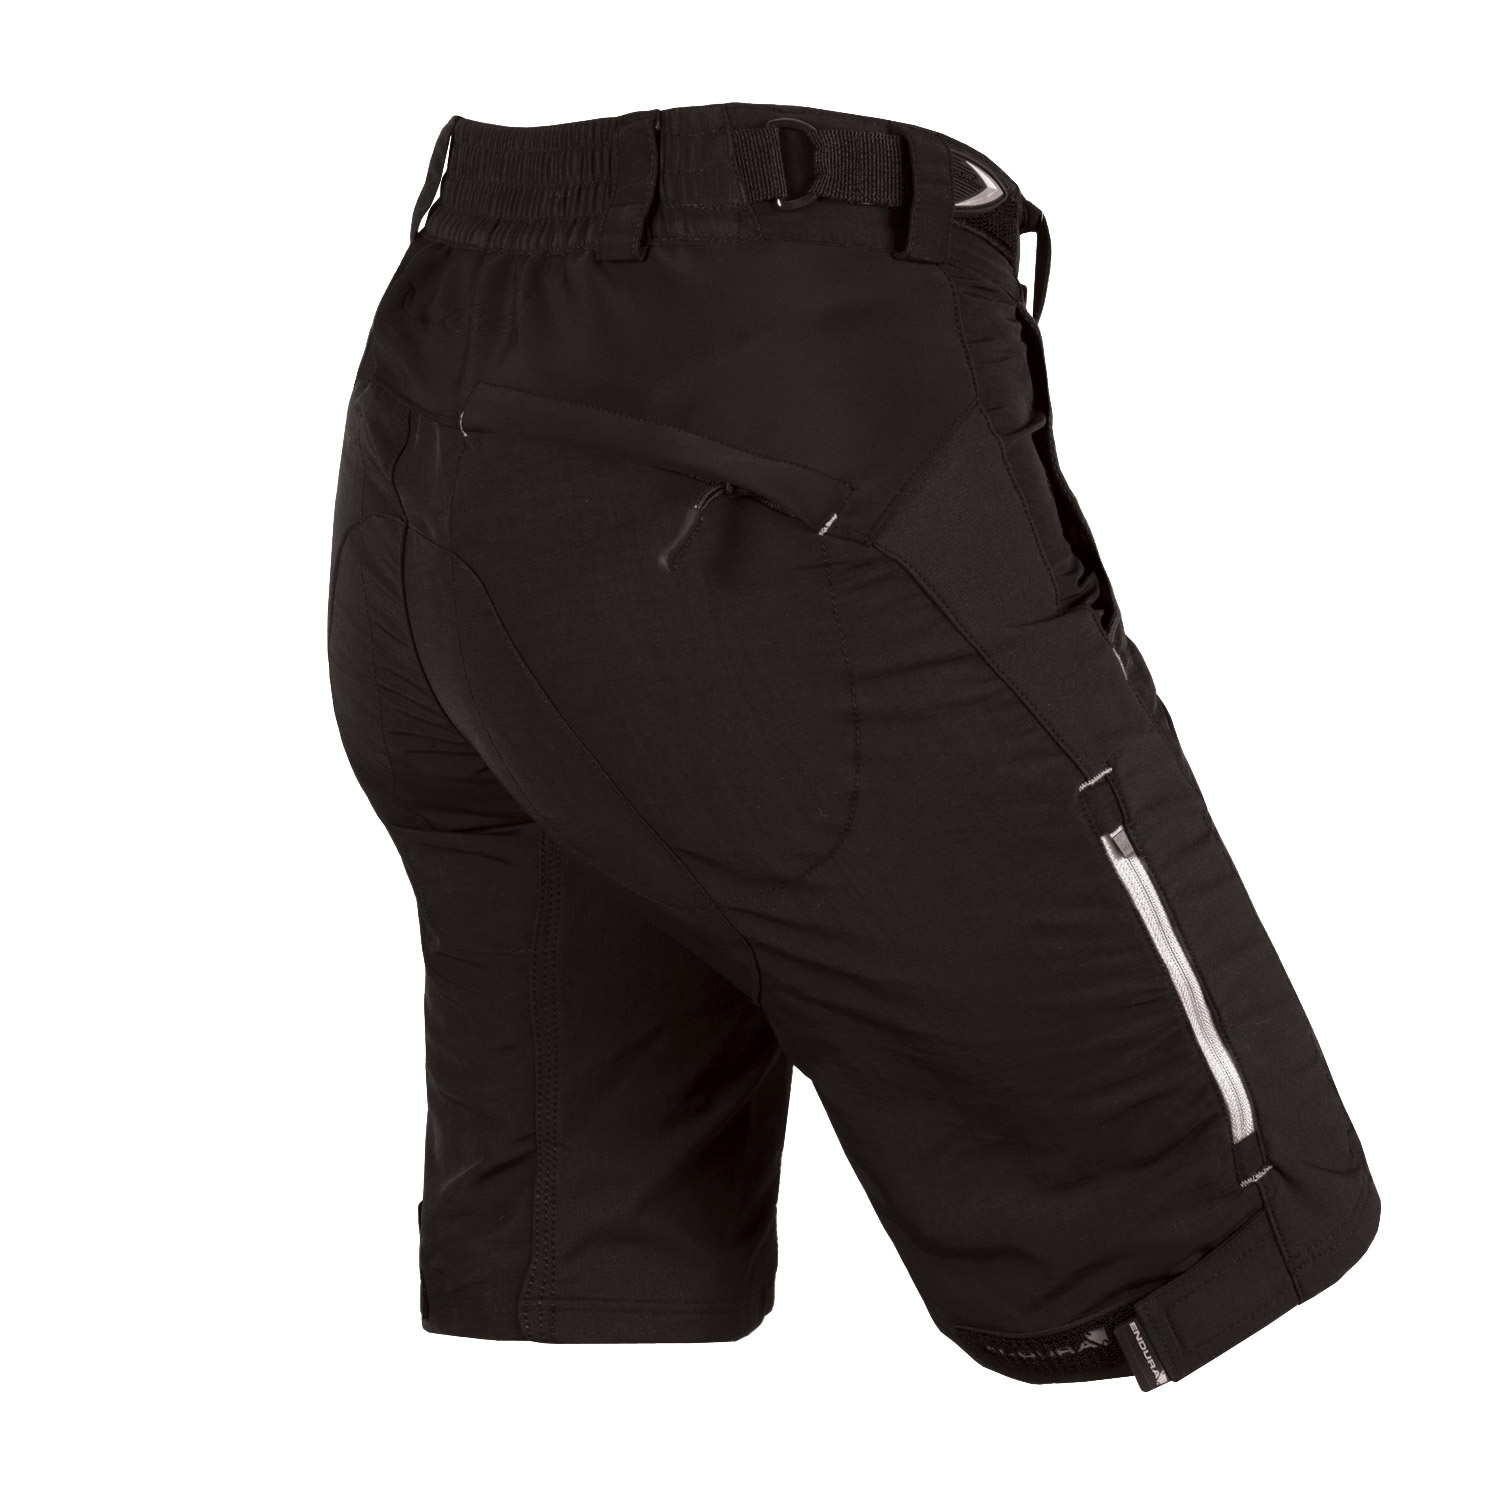 Wms SingleTrack II Short Black